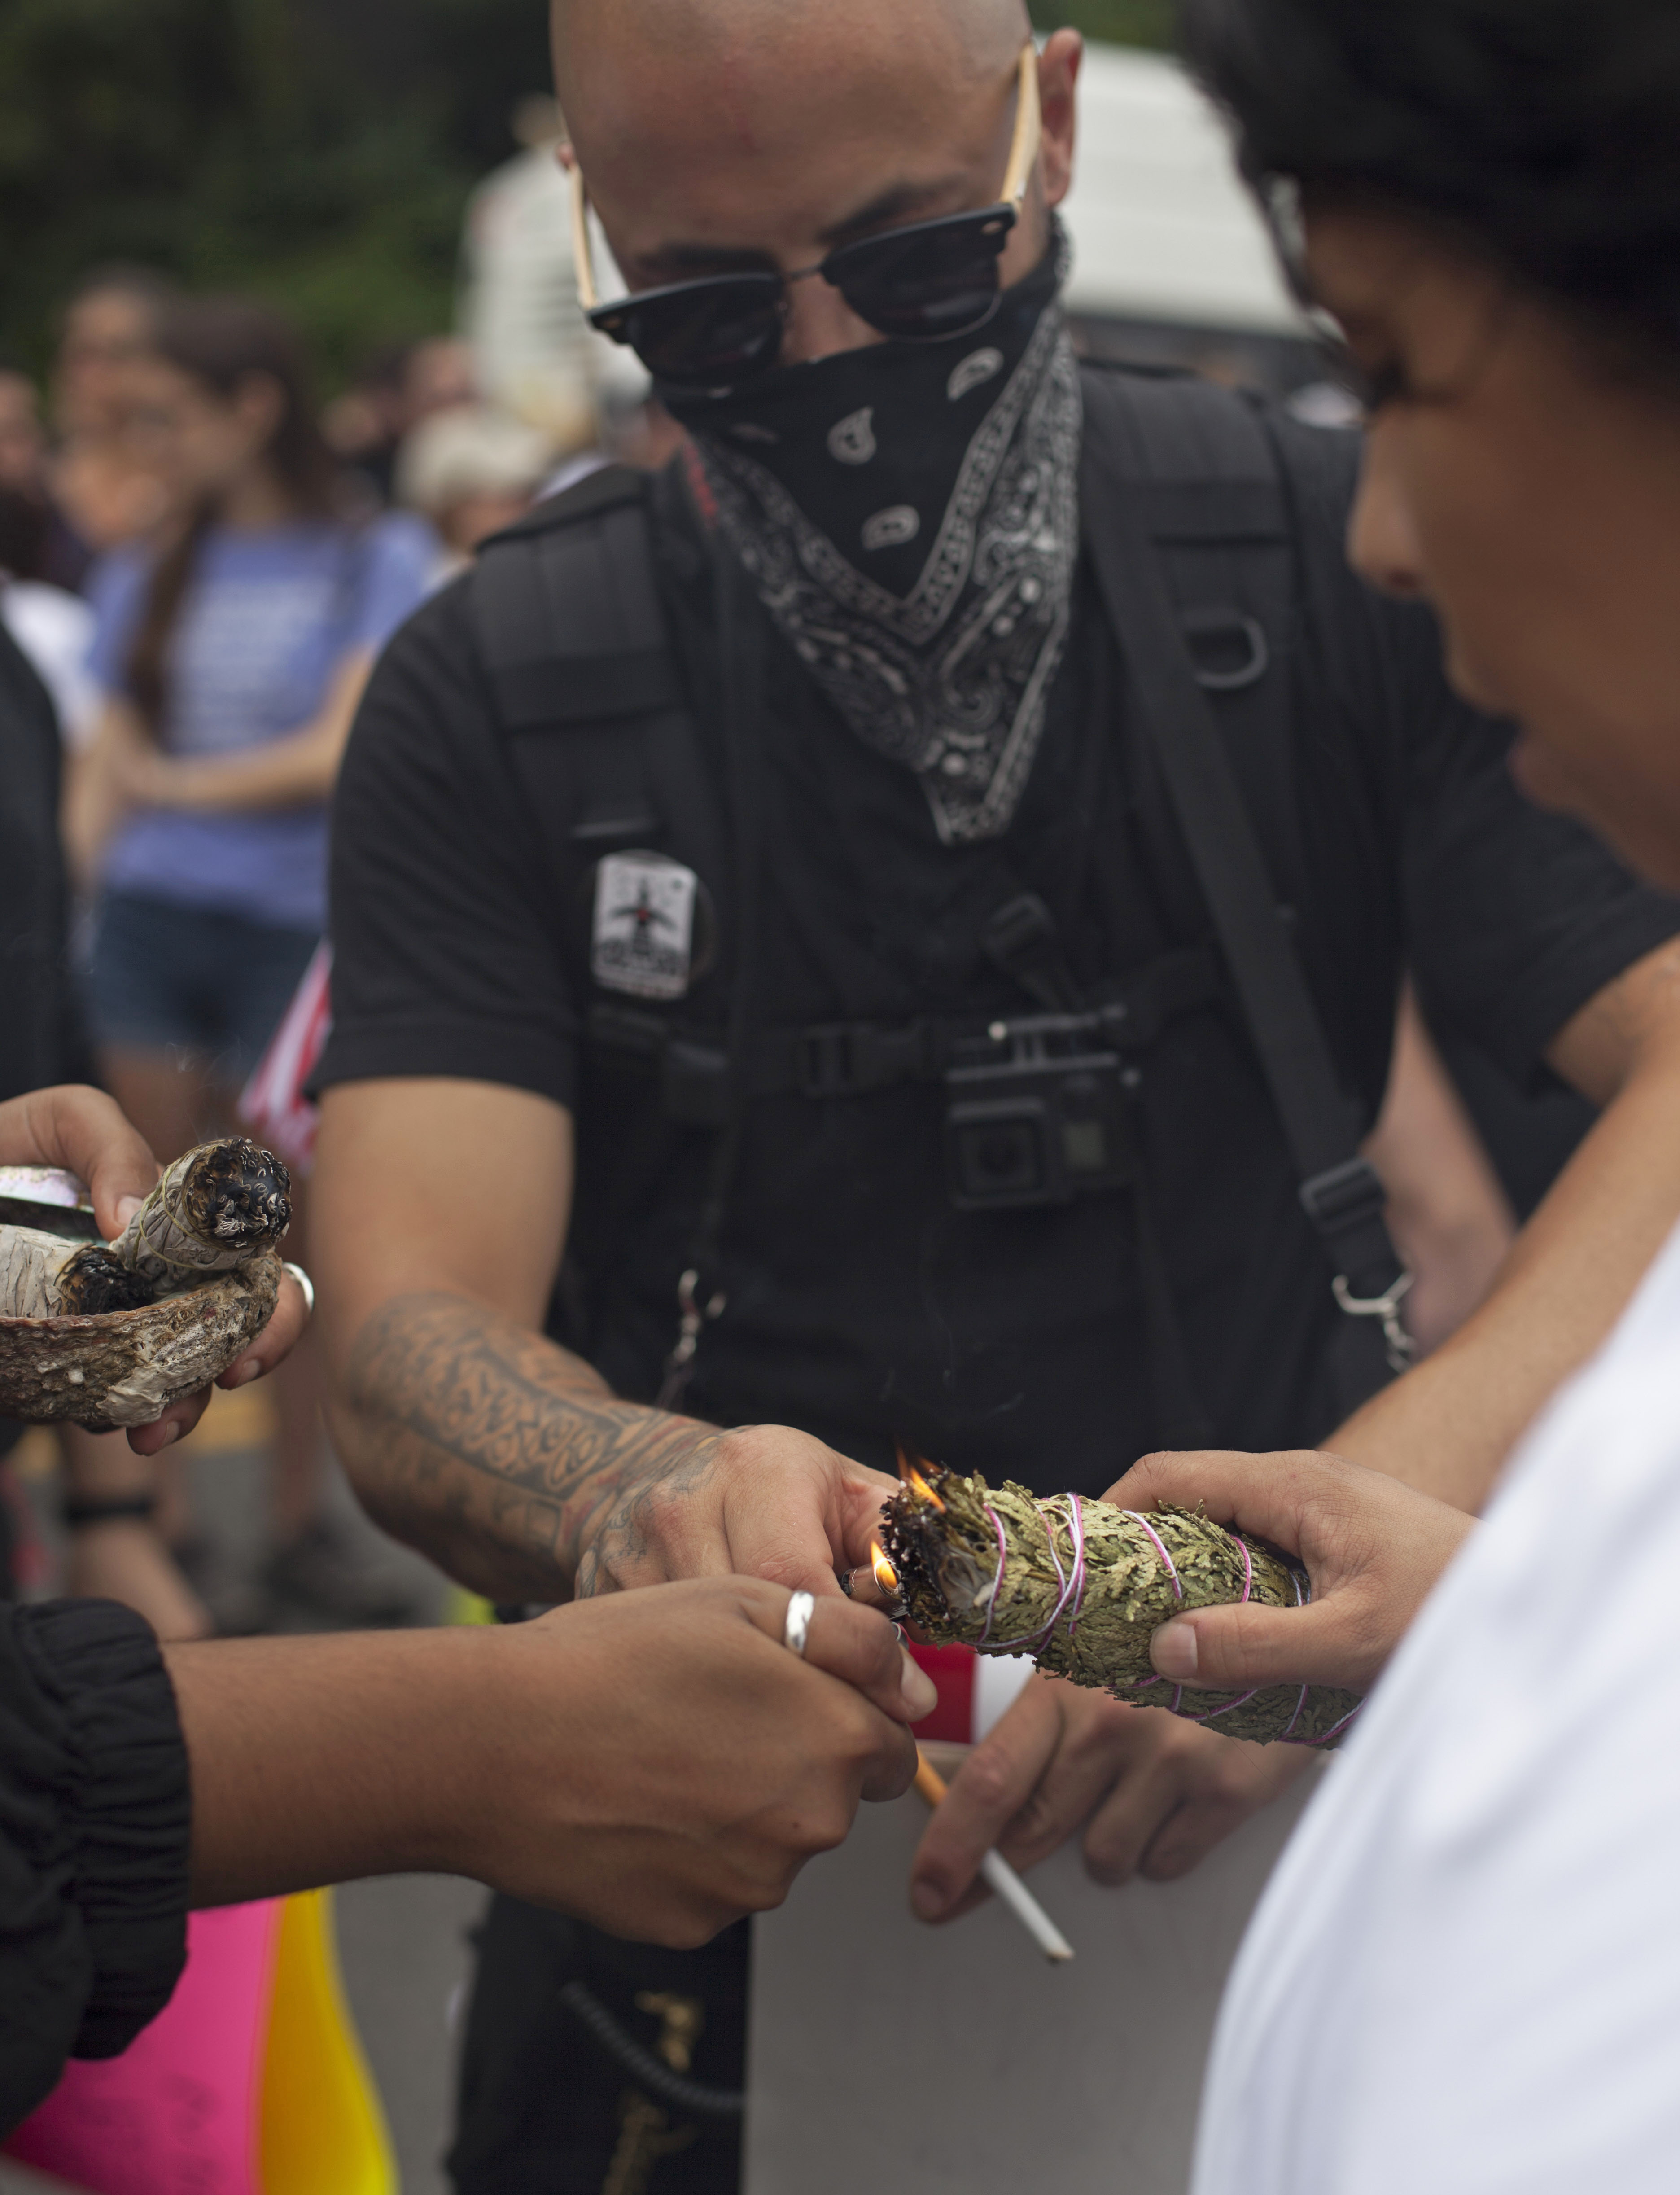 Counter protesters burn sage while amassing at the Reggie Track & Field Center in Roxbury. The counter demonstration was against the Free Speech rally at the Boston Common. (Shay Horse/GroundTruth)